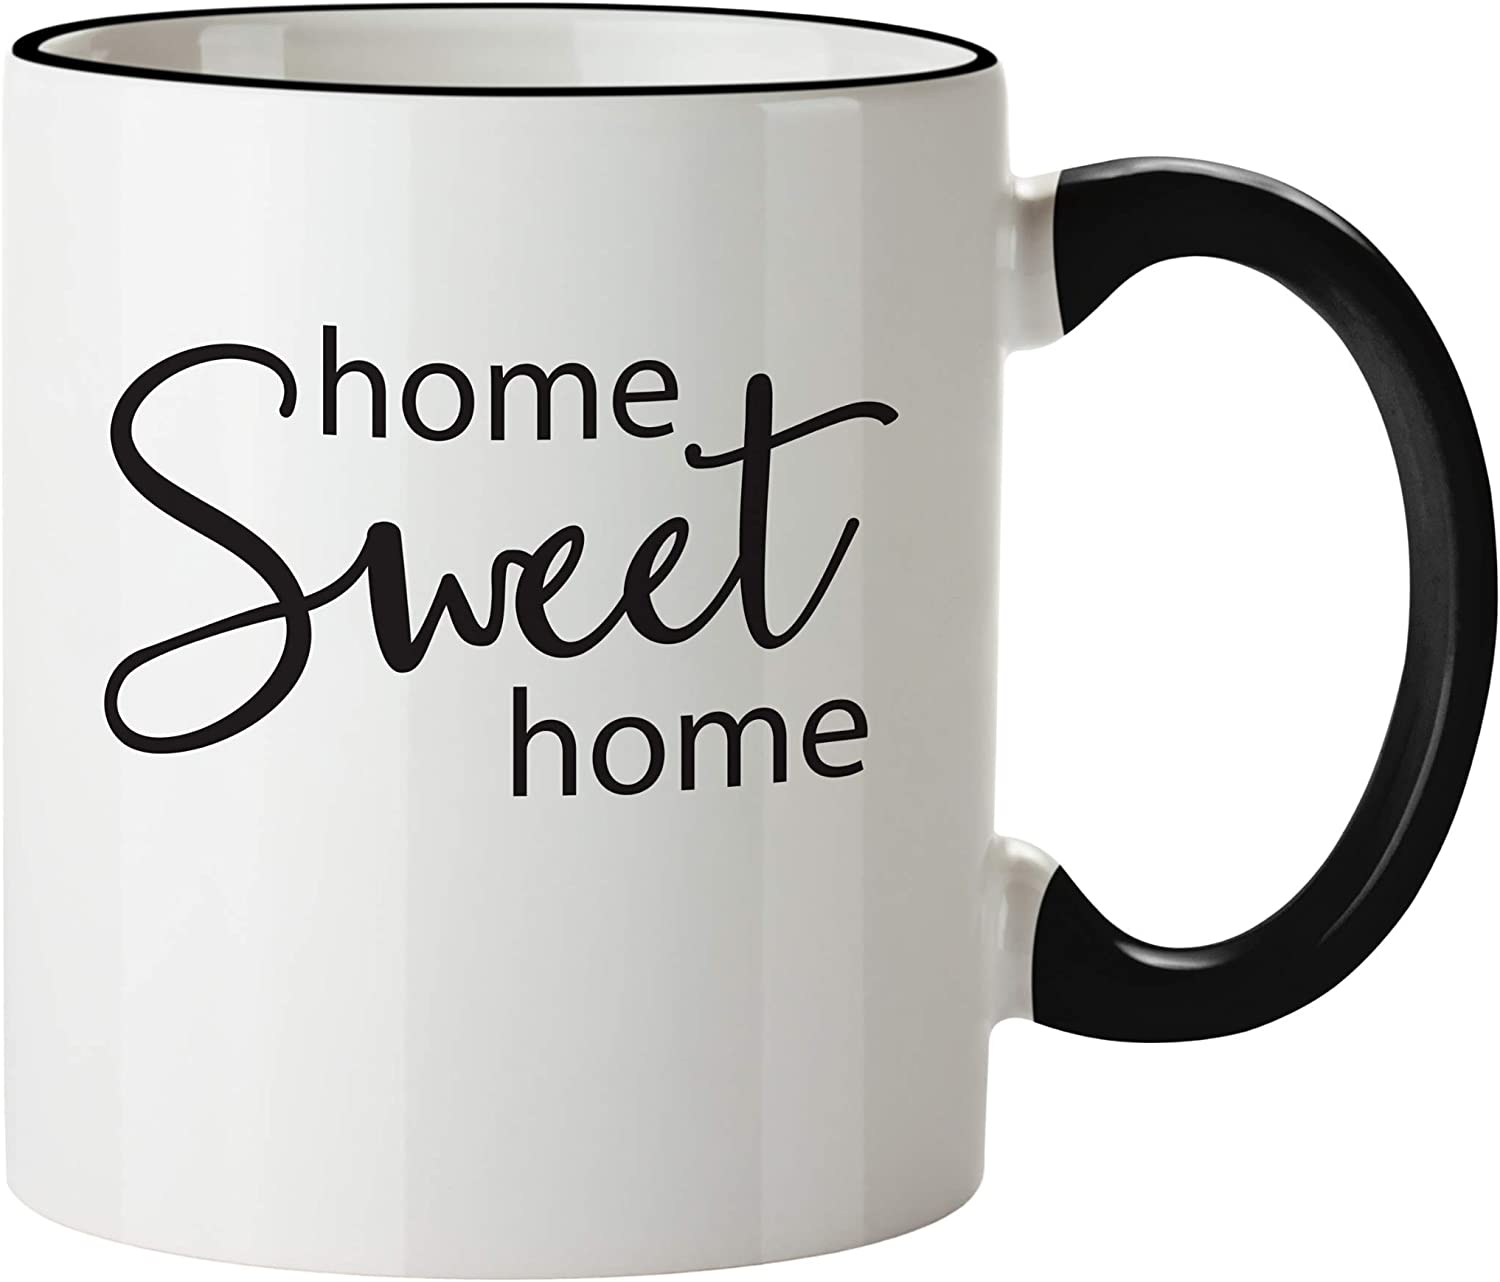 Home Sweet Home 11oz Coffee Mug - Housewarming Gifts for New Home - Unique House Warming Gift Ideas for Women, Men, Him, Her, Couple - First Time House Owner Luxury Coffe Cup Presents